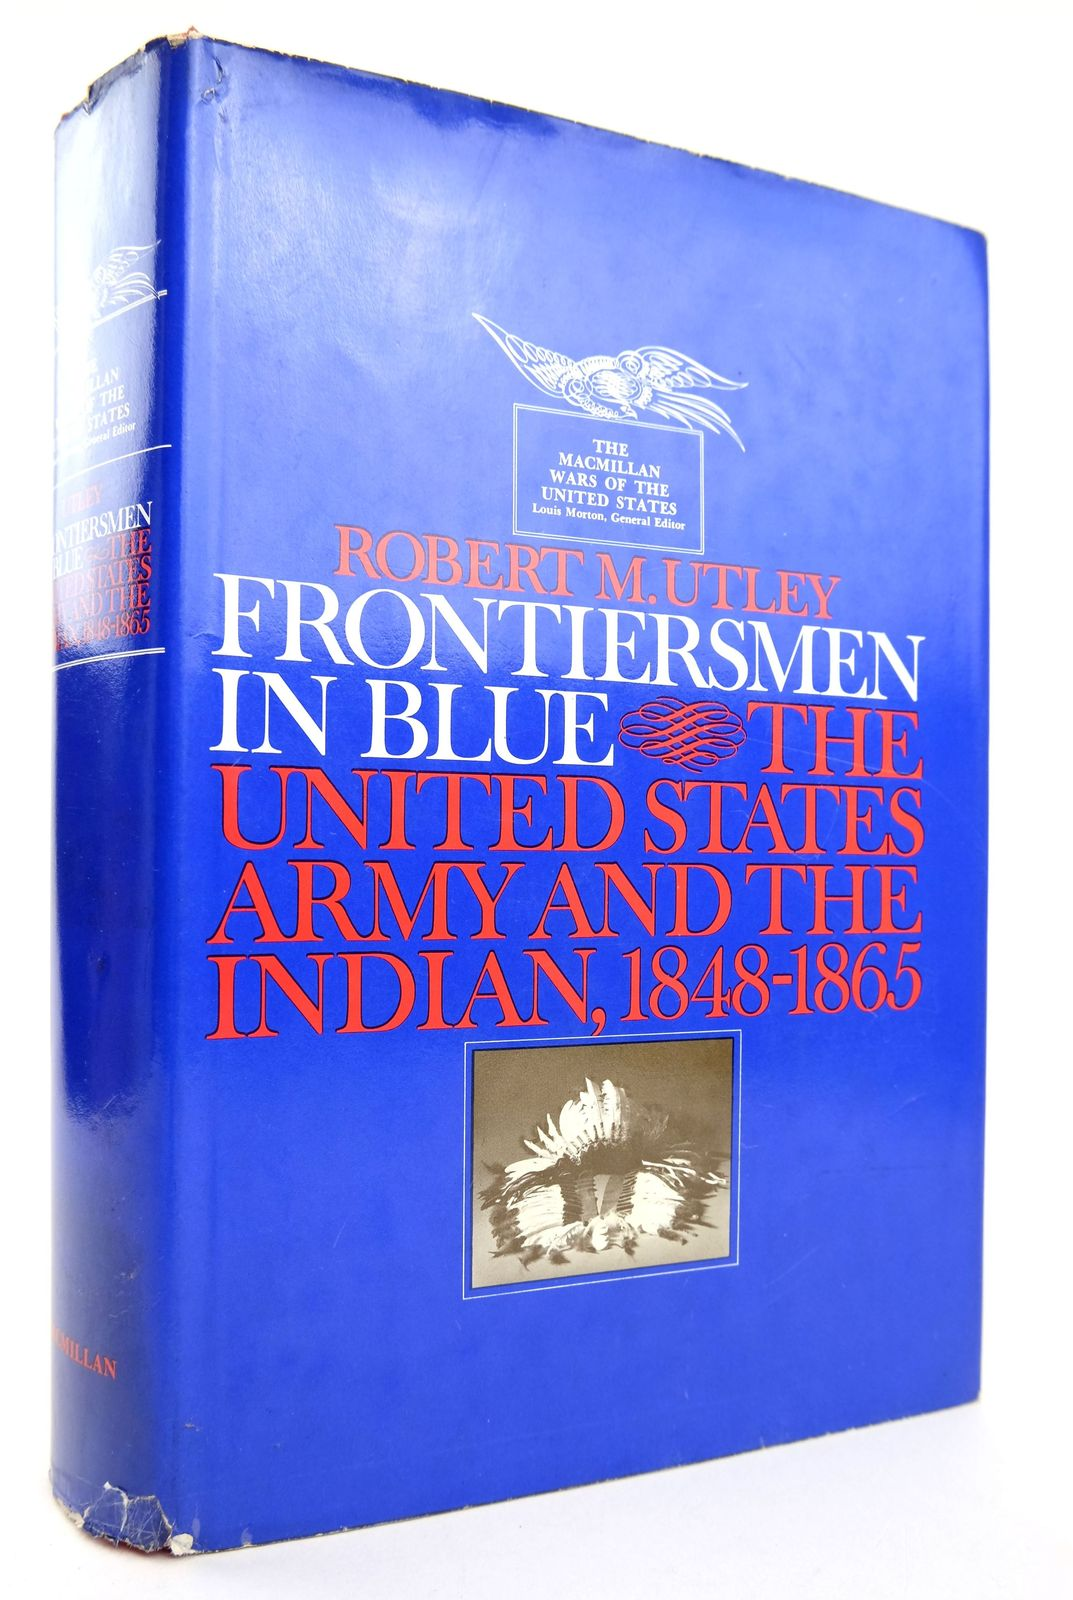 Photo of FRONTIERSMEN IN BLUE: THE UNITED STATES ARMY AND THE INDIAN 1848-1865- Stock Number: 1818945